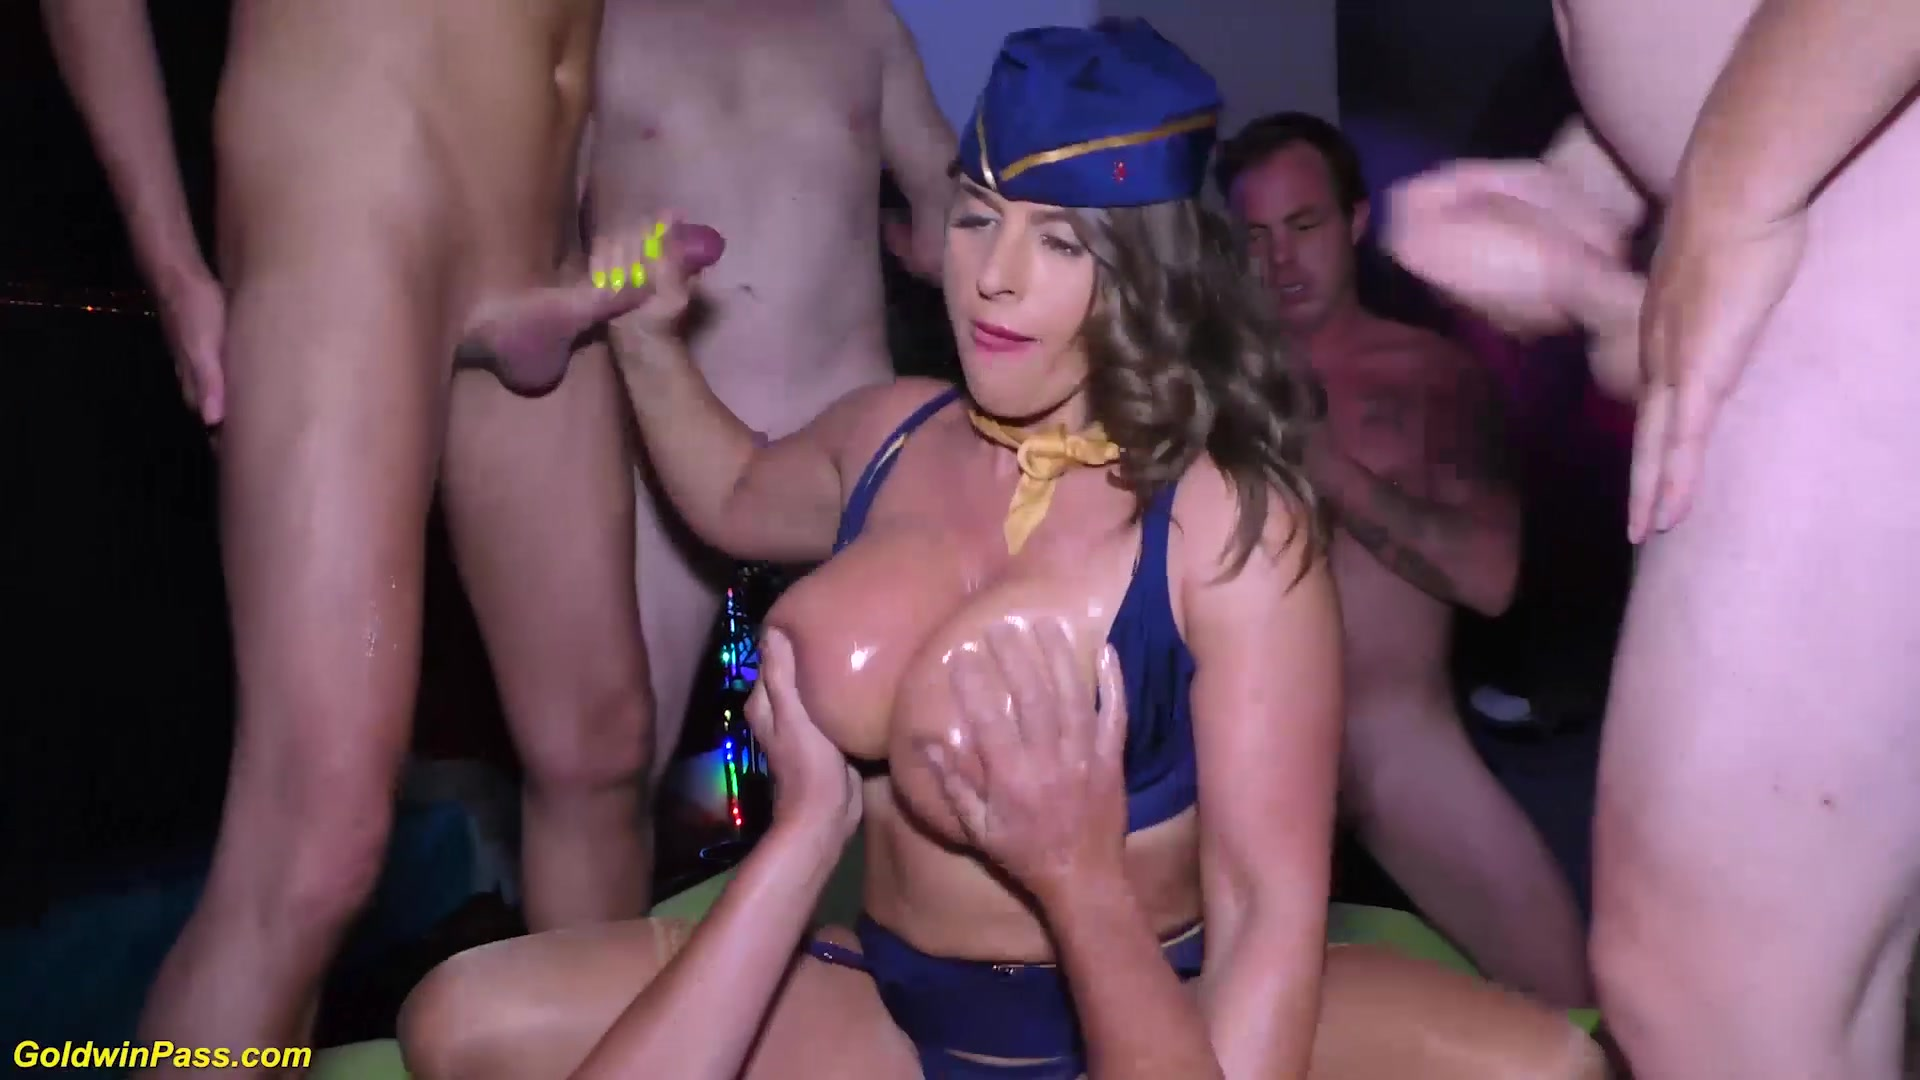 sorry, real latina gives blowjob especial. Just